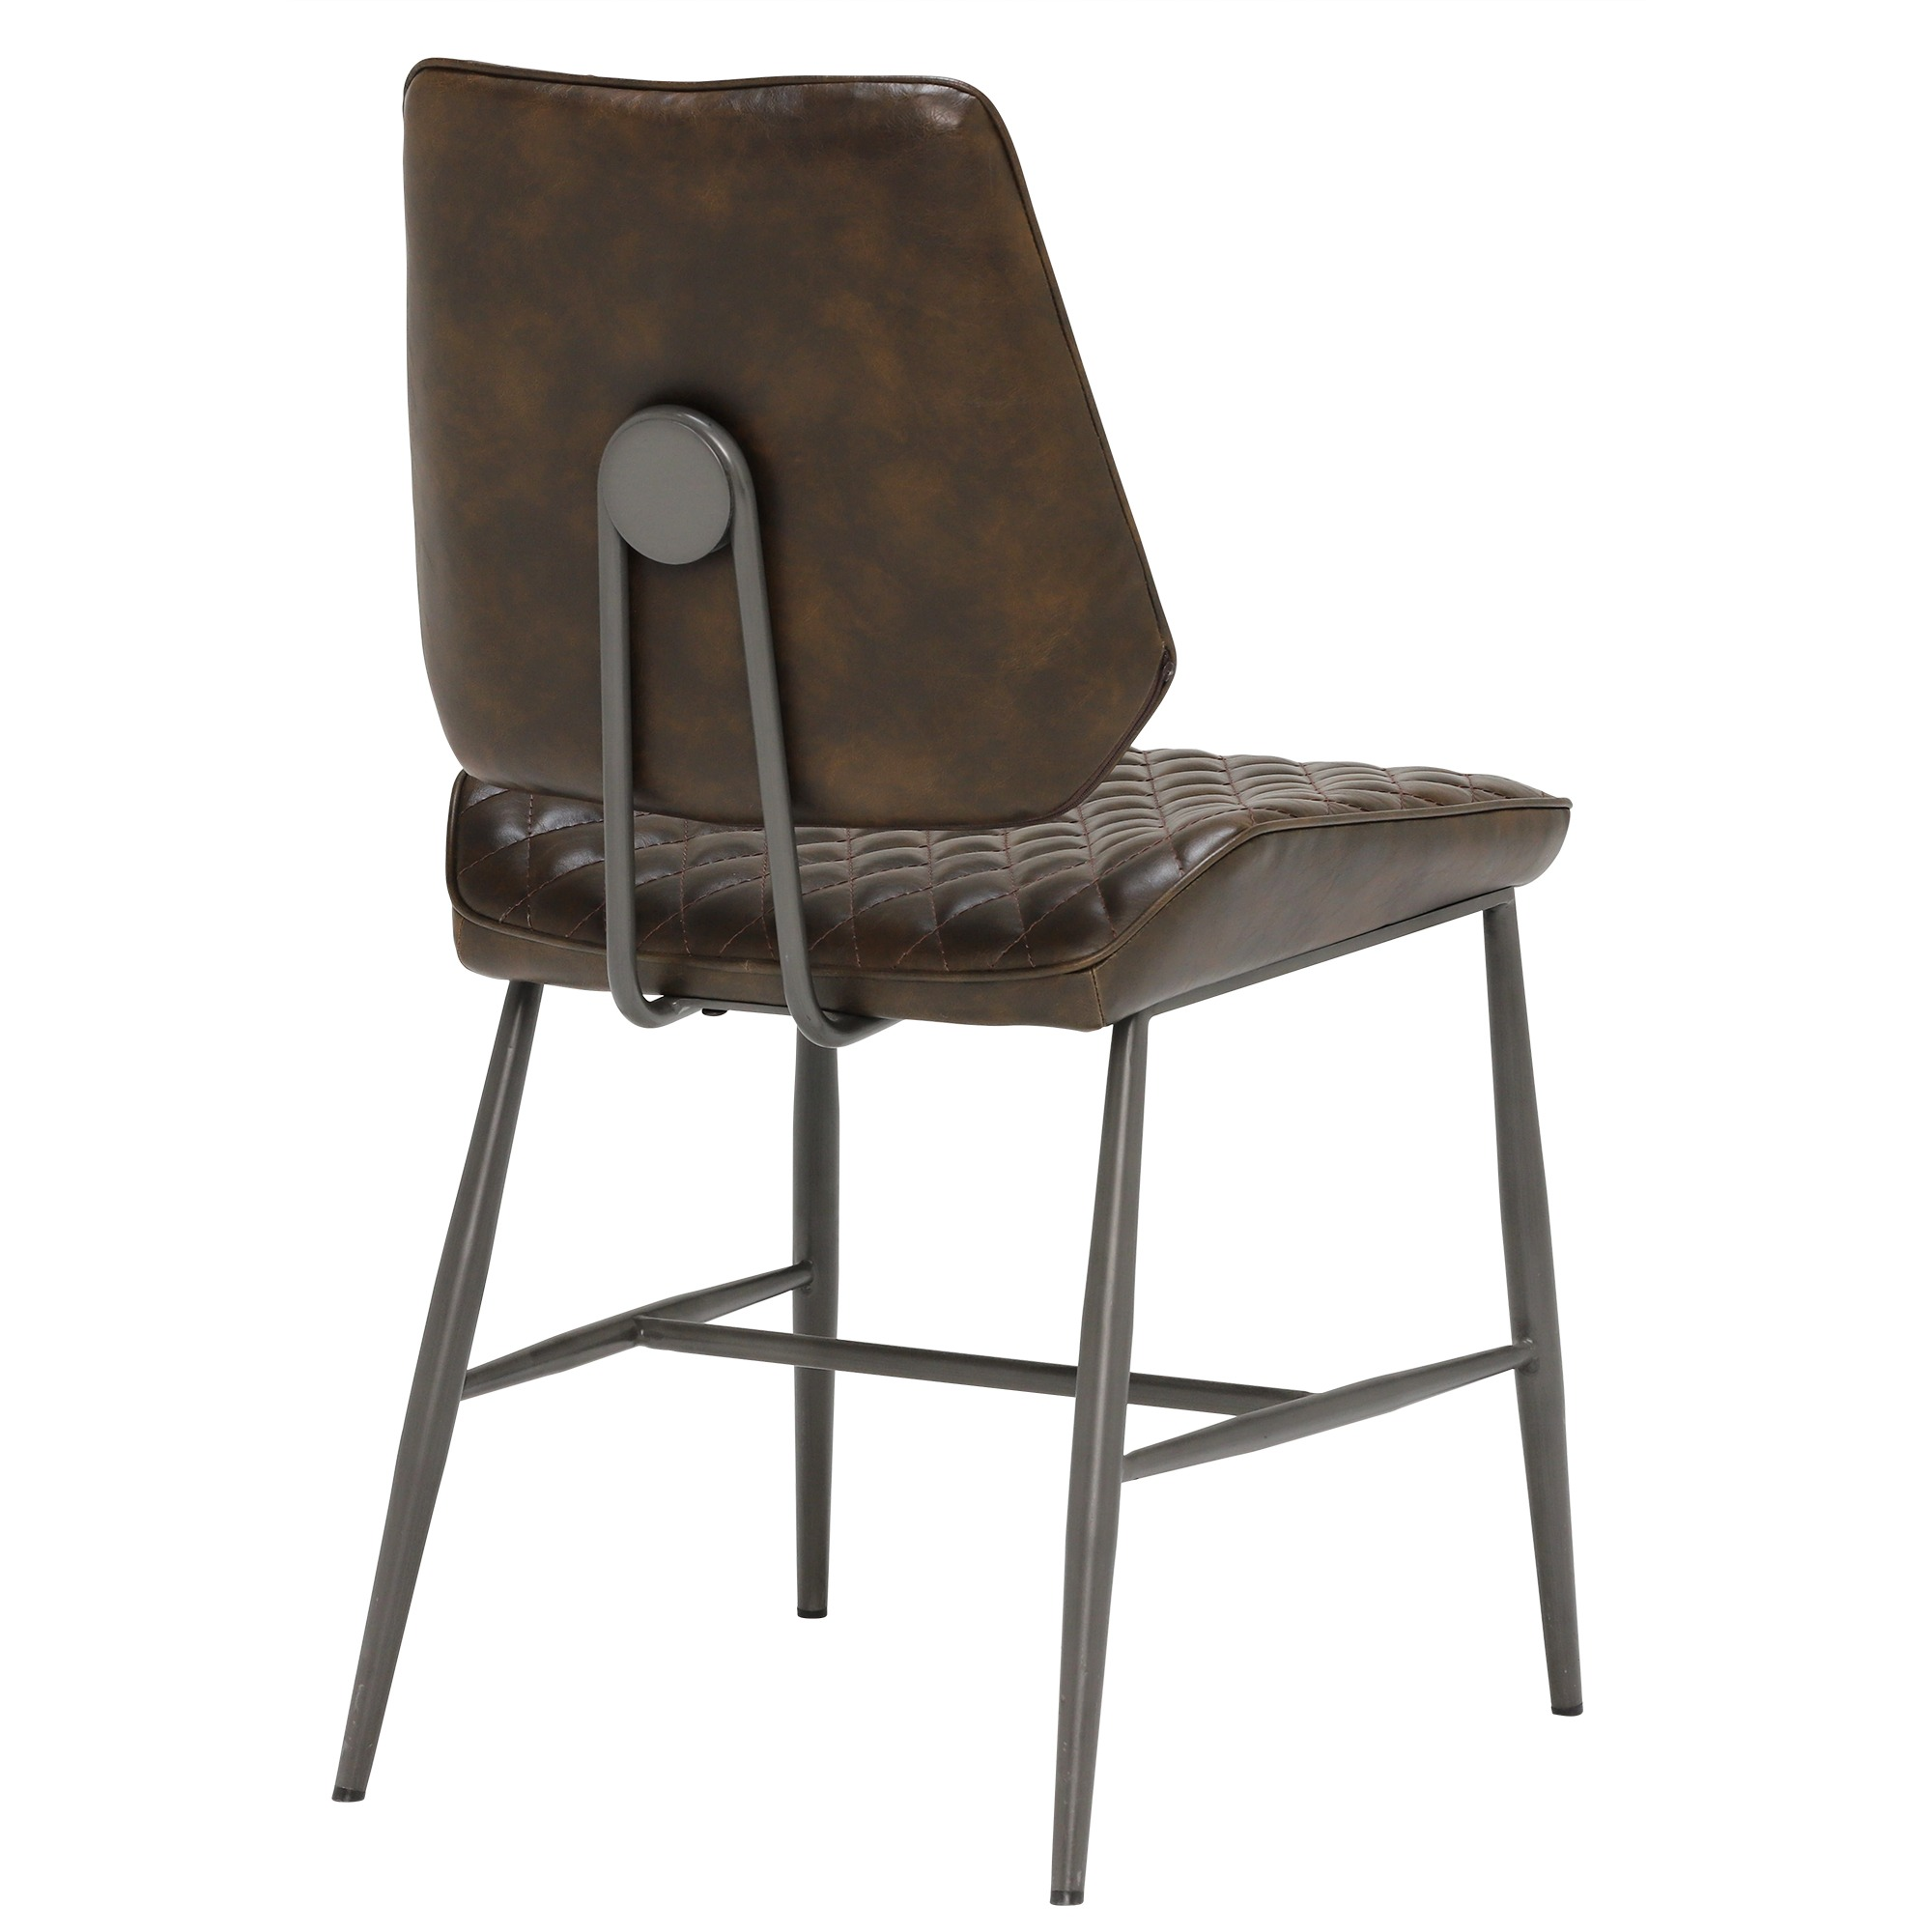 NEMOX BROWN DINING CHAIR -BACK DETAIL